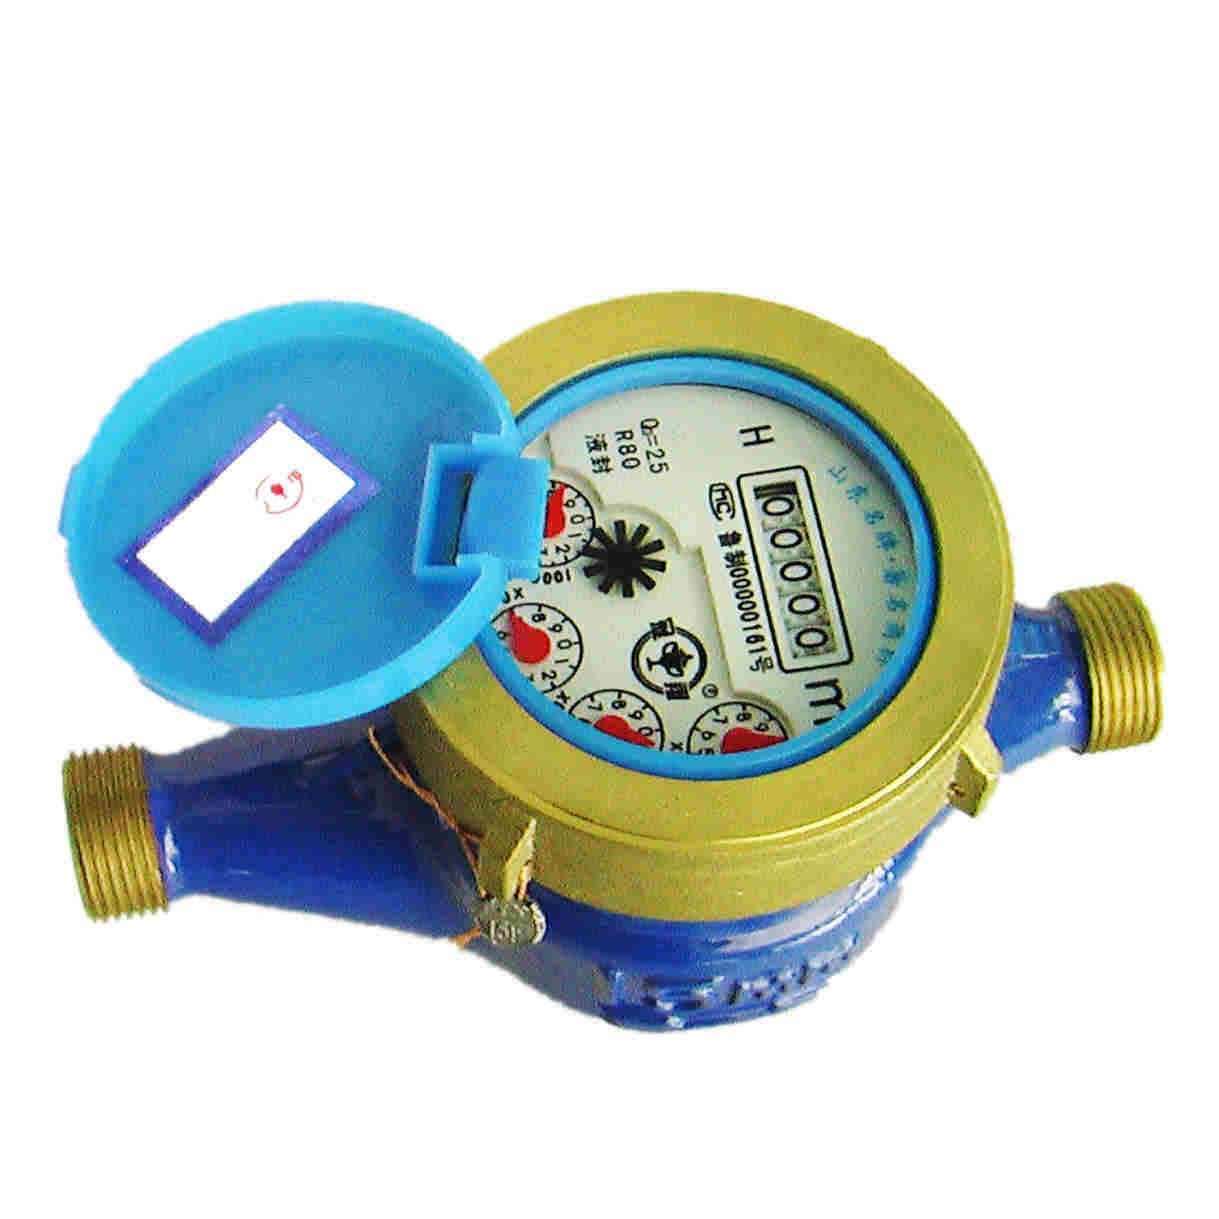 House Water Meter : China brass body water meter lxs